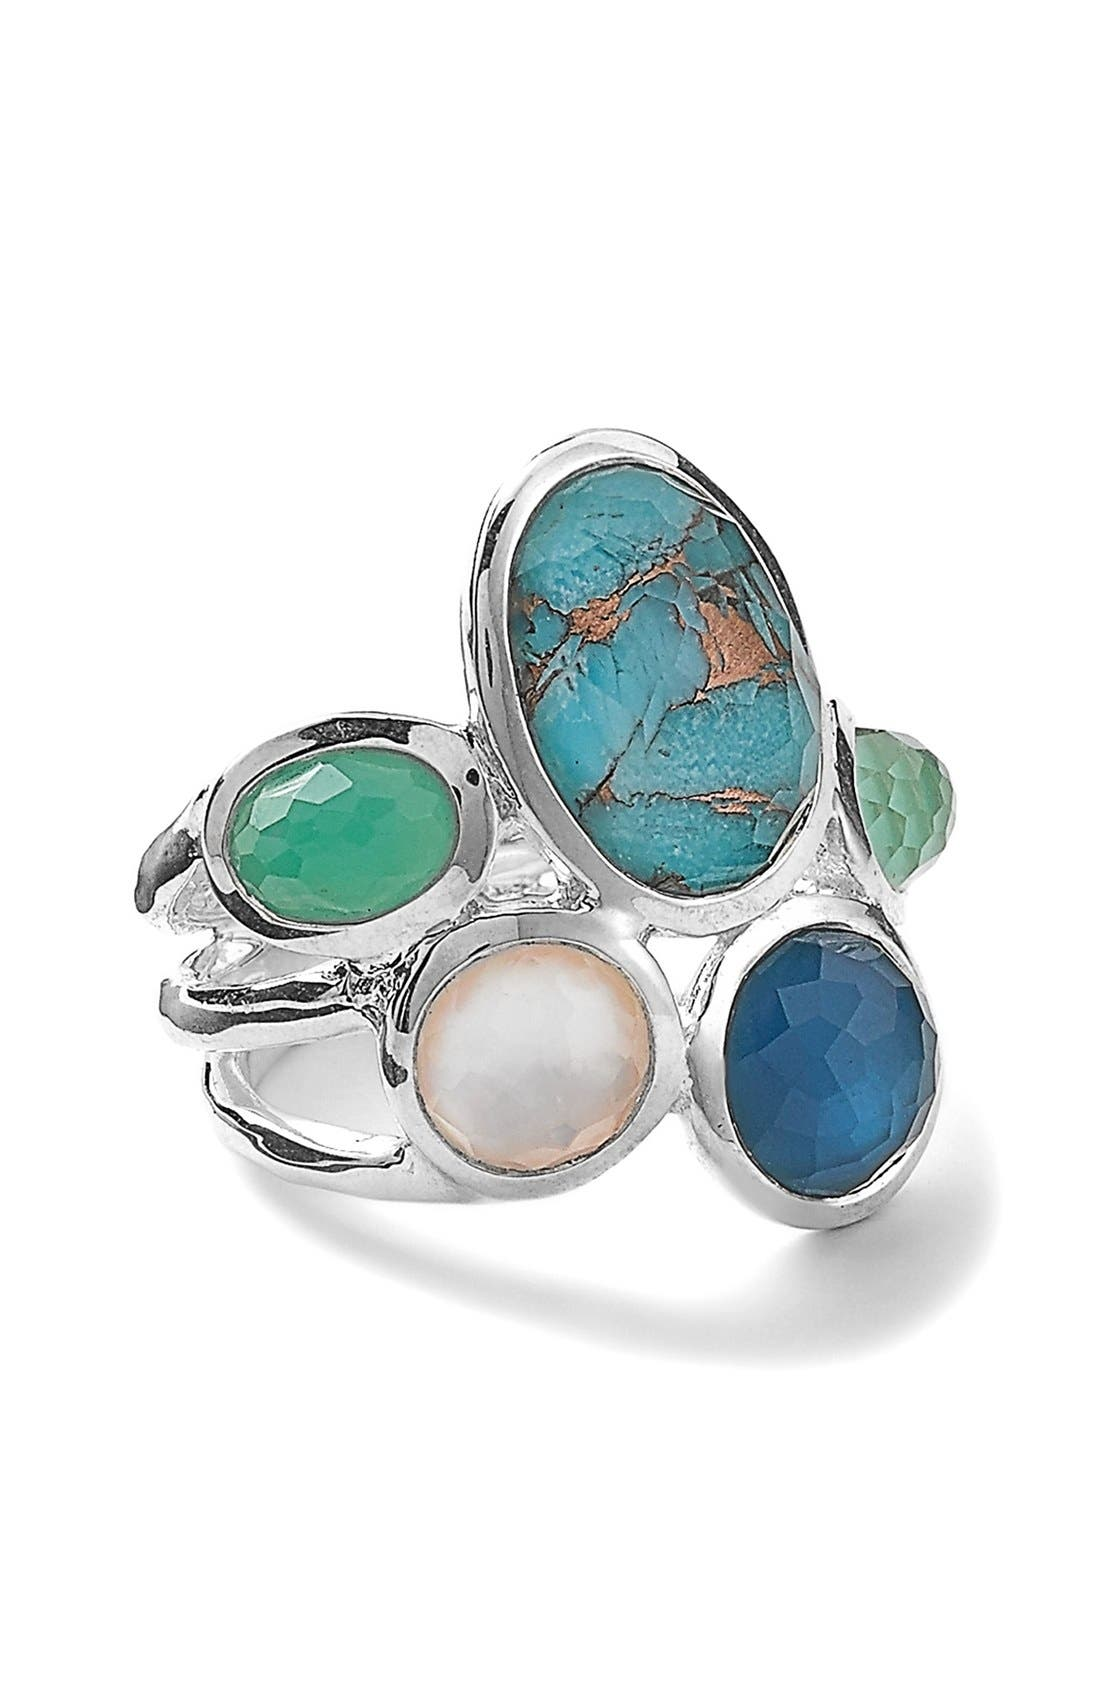 Main Image - Ippolita 'Wonderland' Cluster Statement Ring